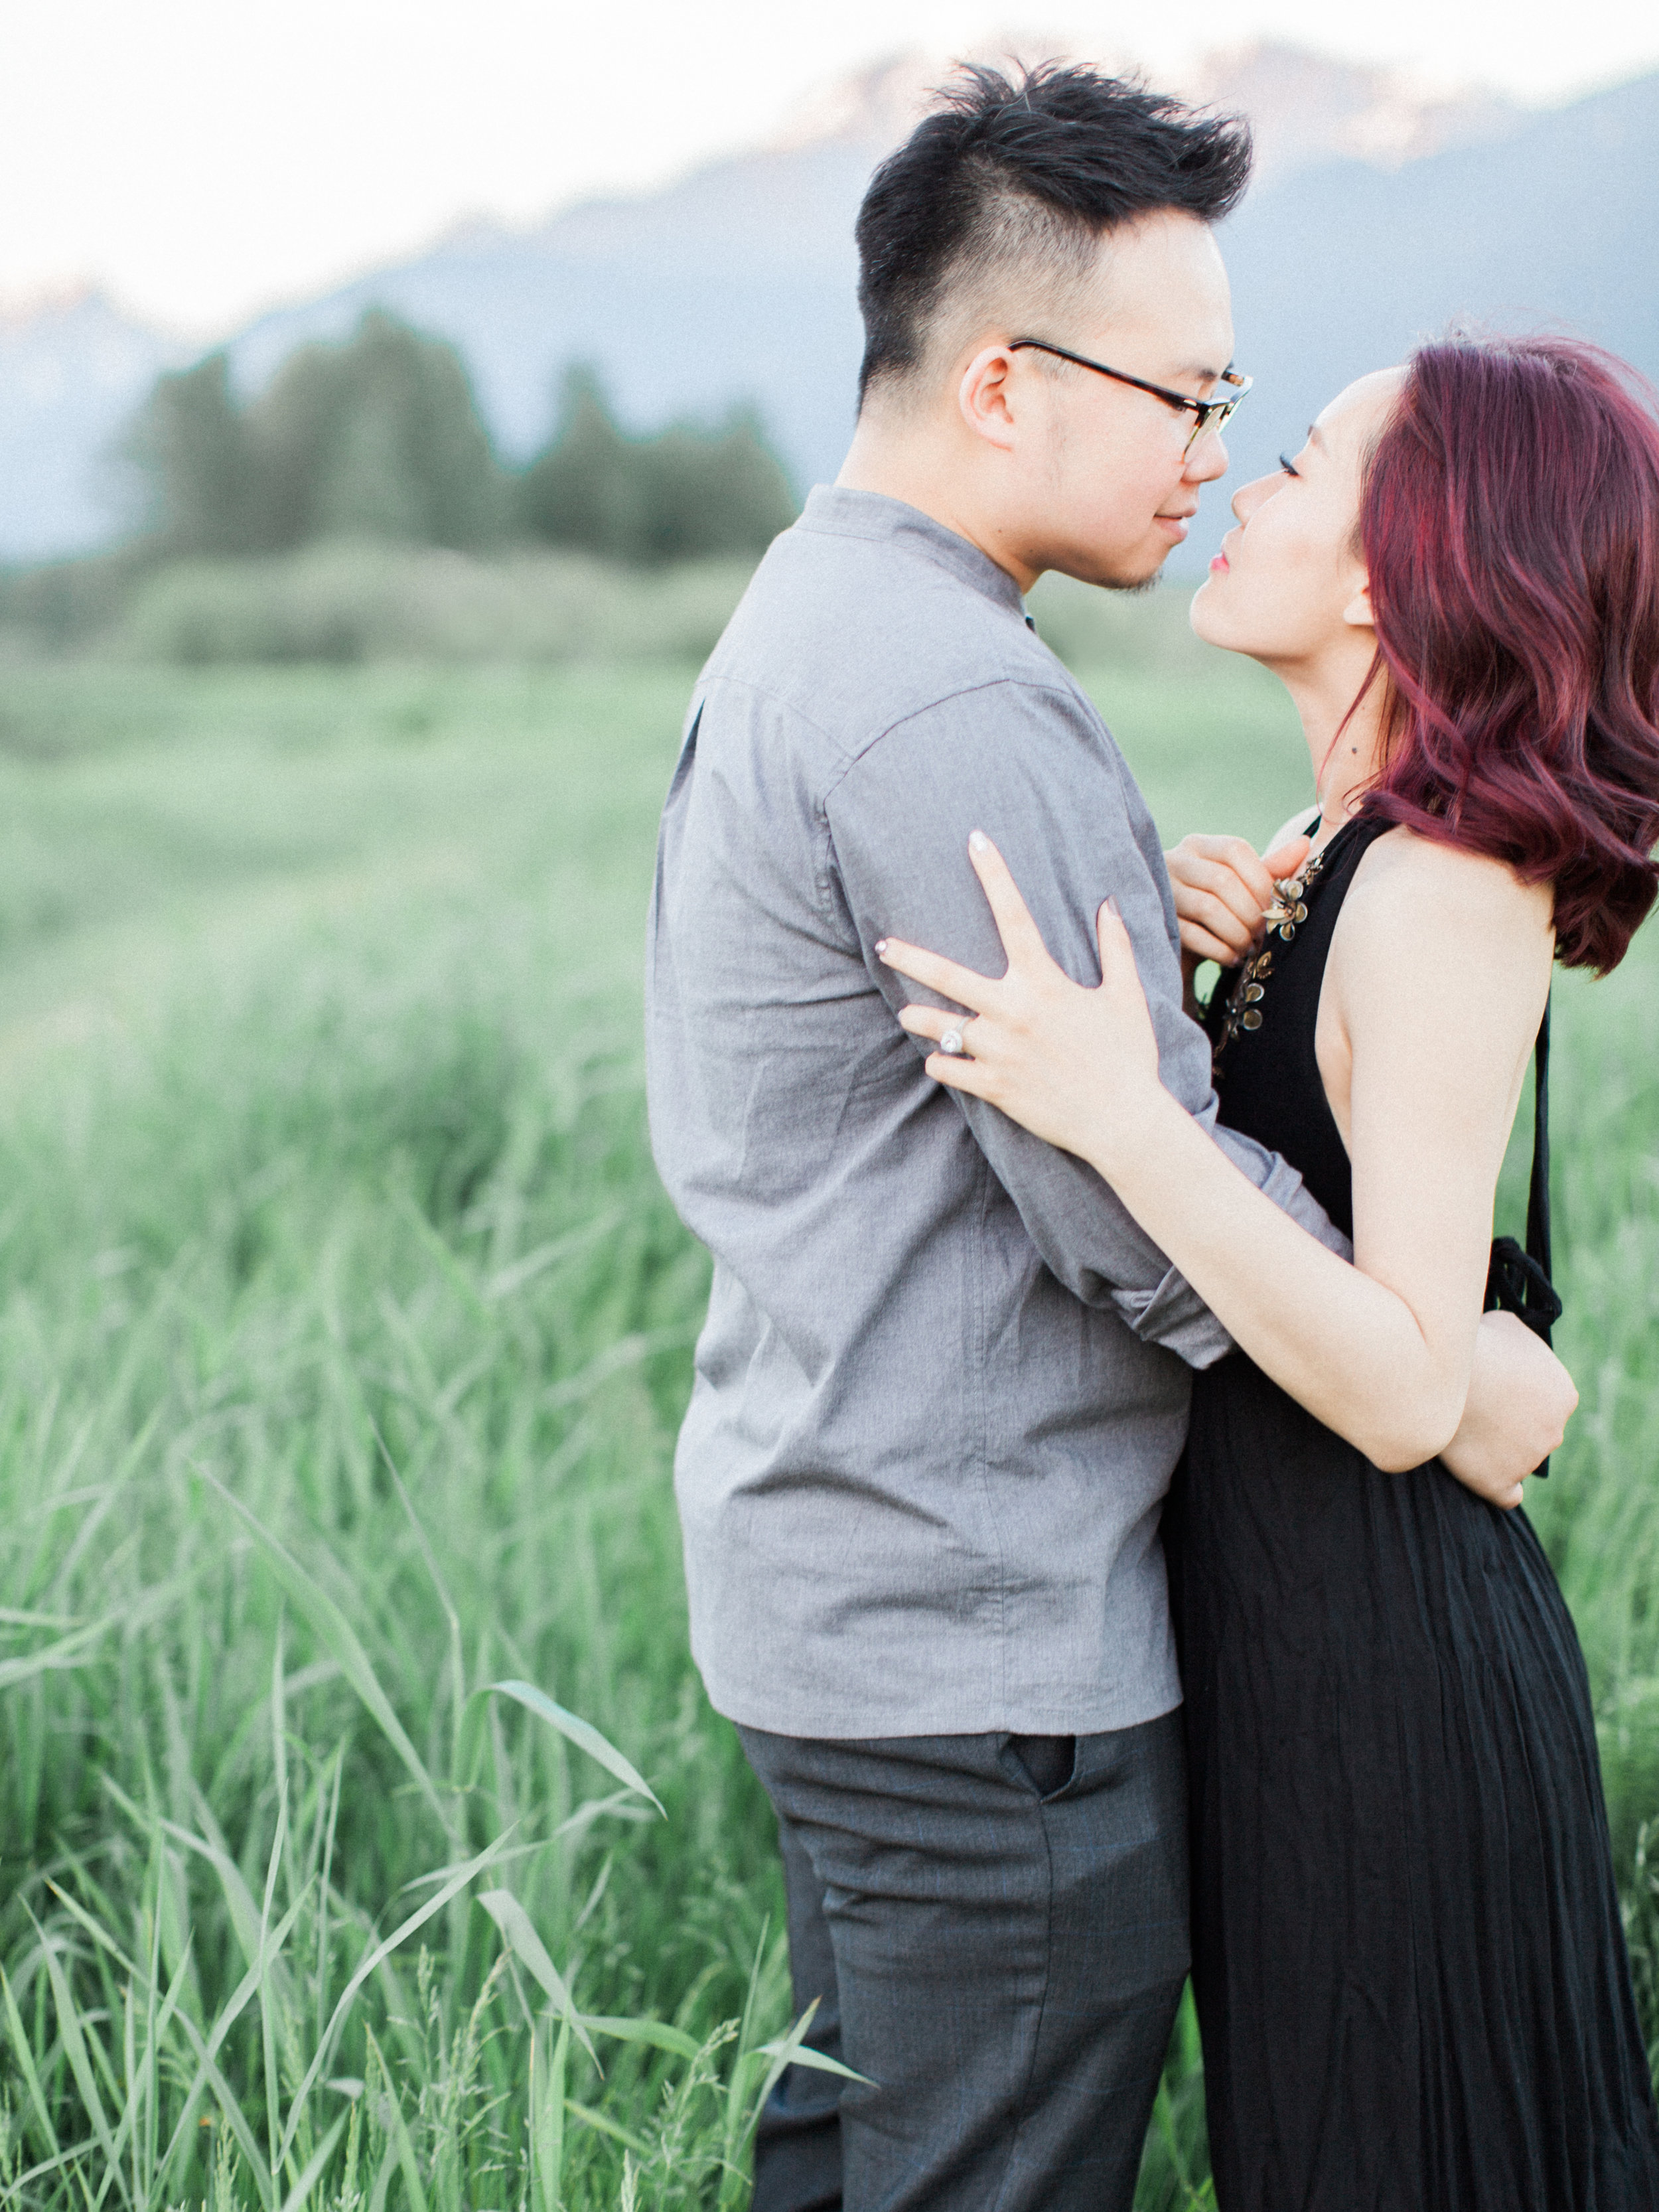 20170528Maple_Ridge_Engagement_Mary_Marco_Prewedding-47 copy.jpg